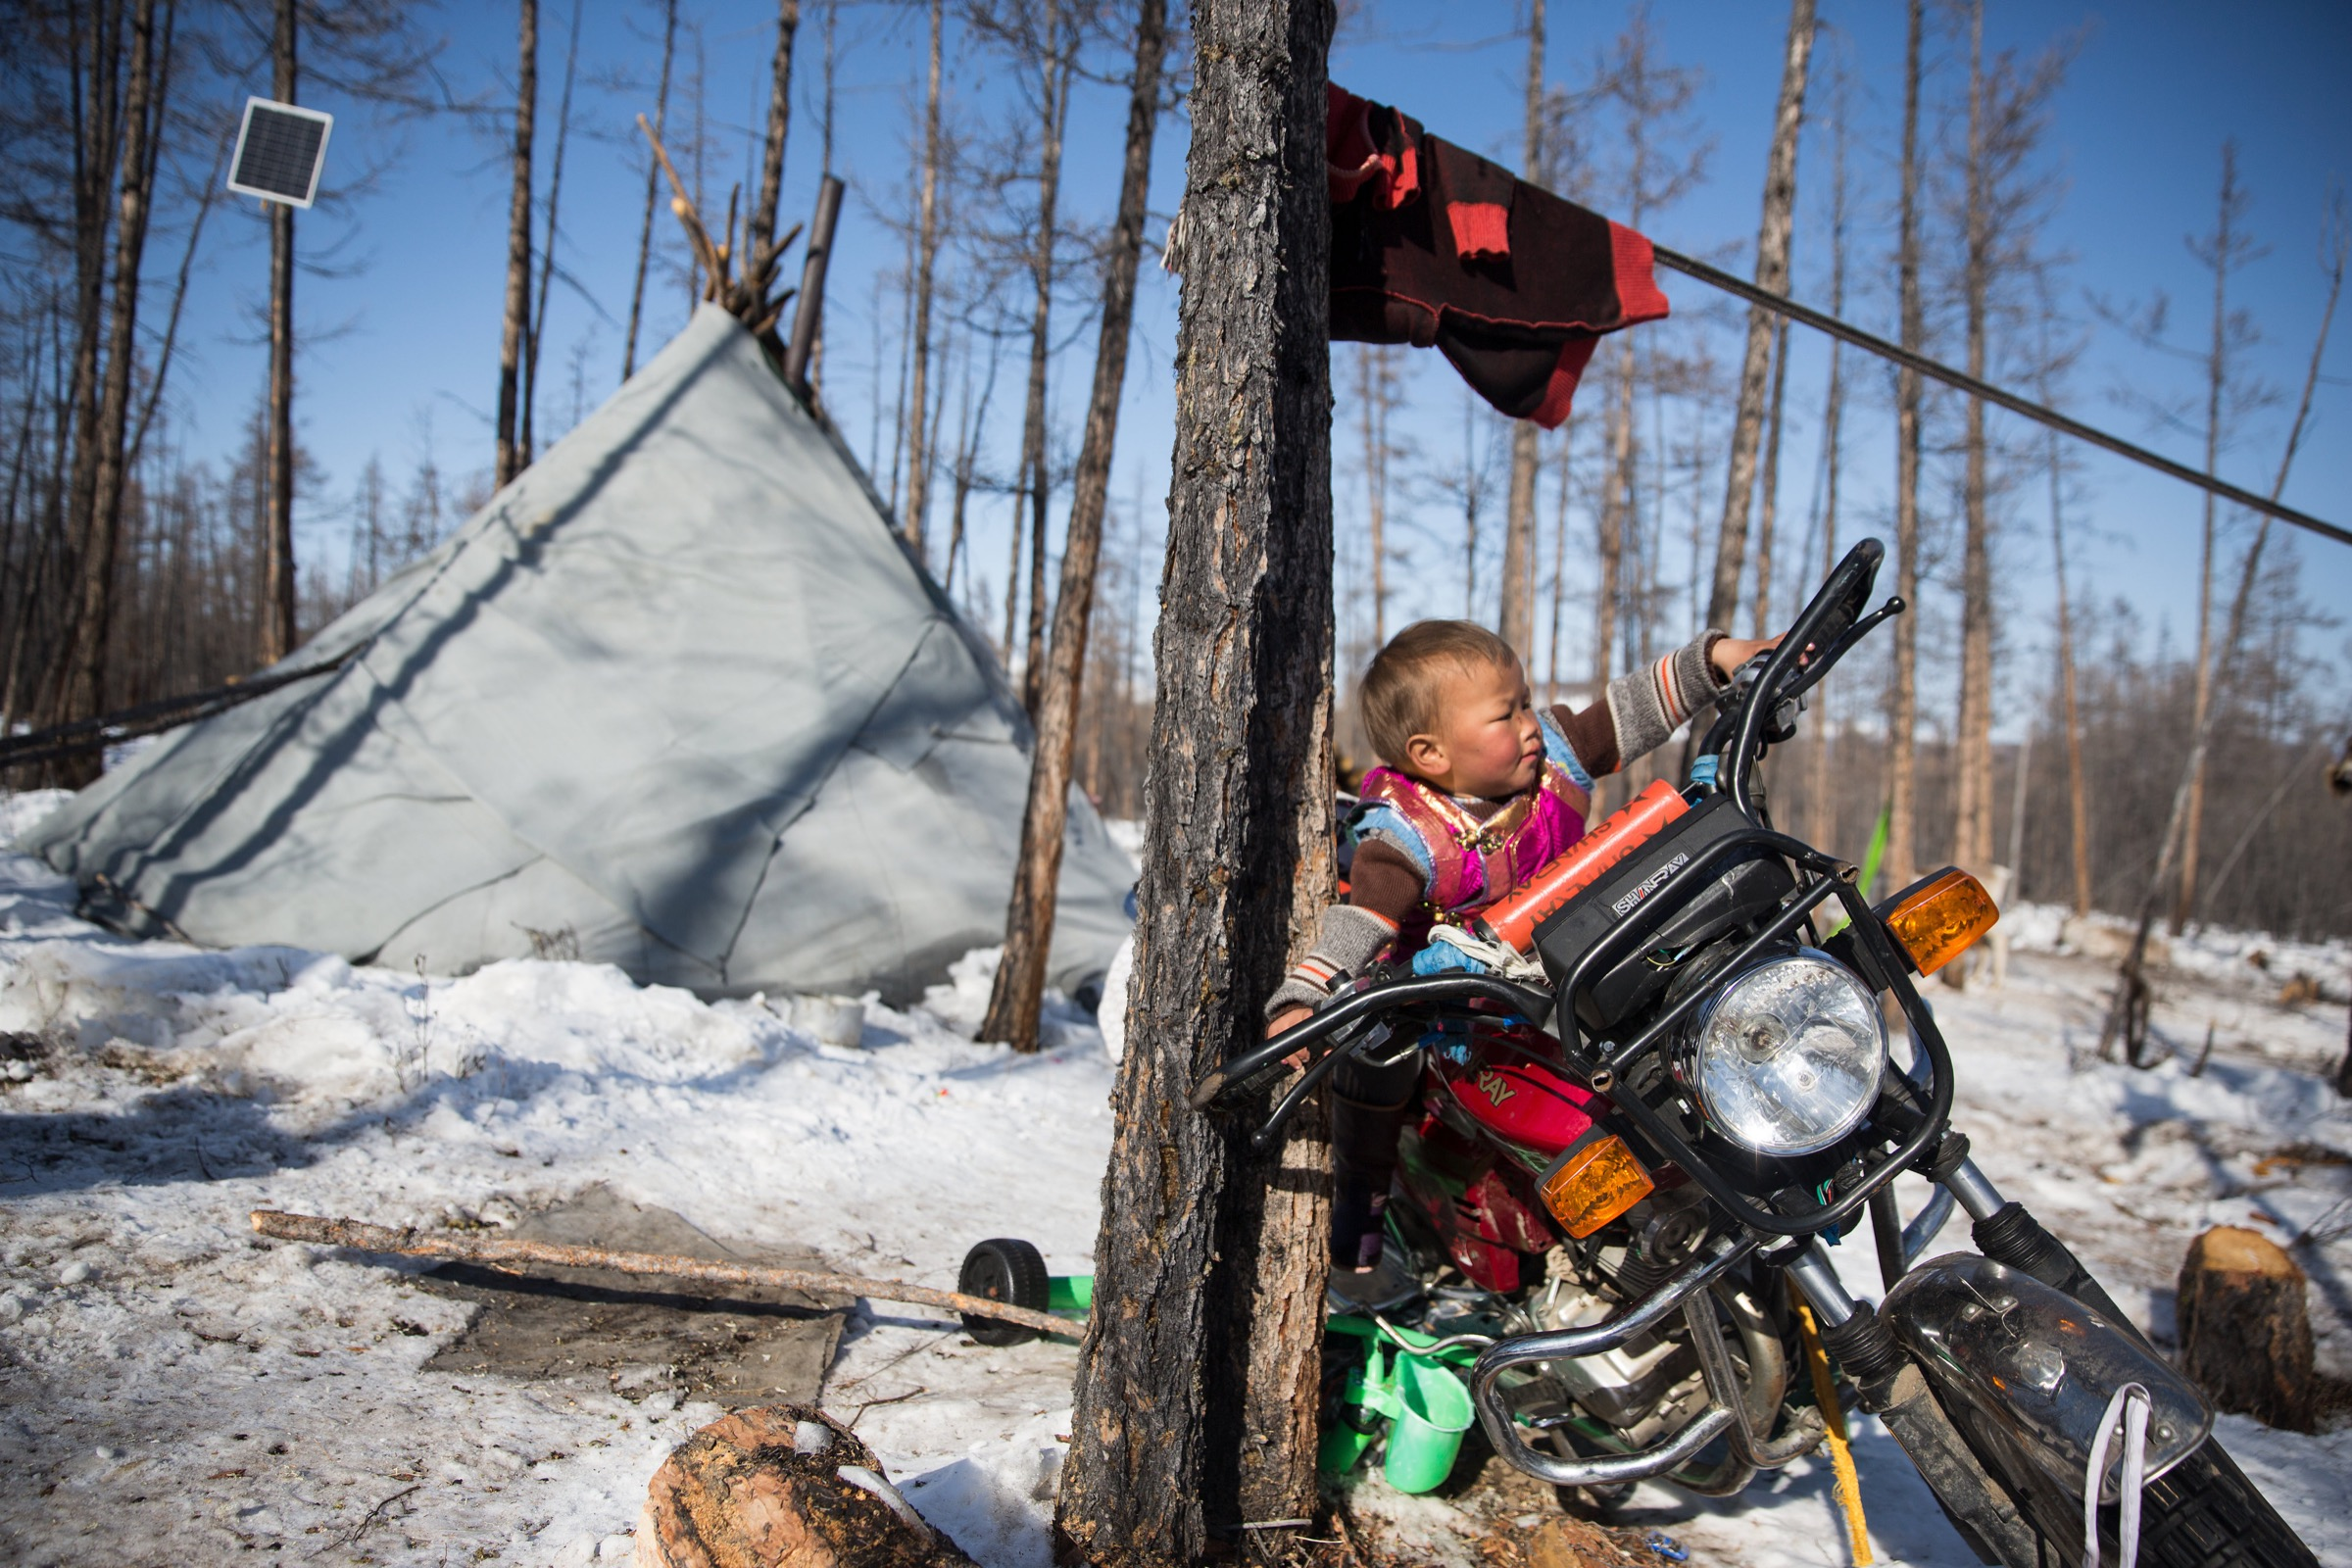 Reindeer aren't the only form of transportation in the taiga, though. Here, a child plays on a motorcycle just outside his family's teepee.